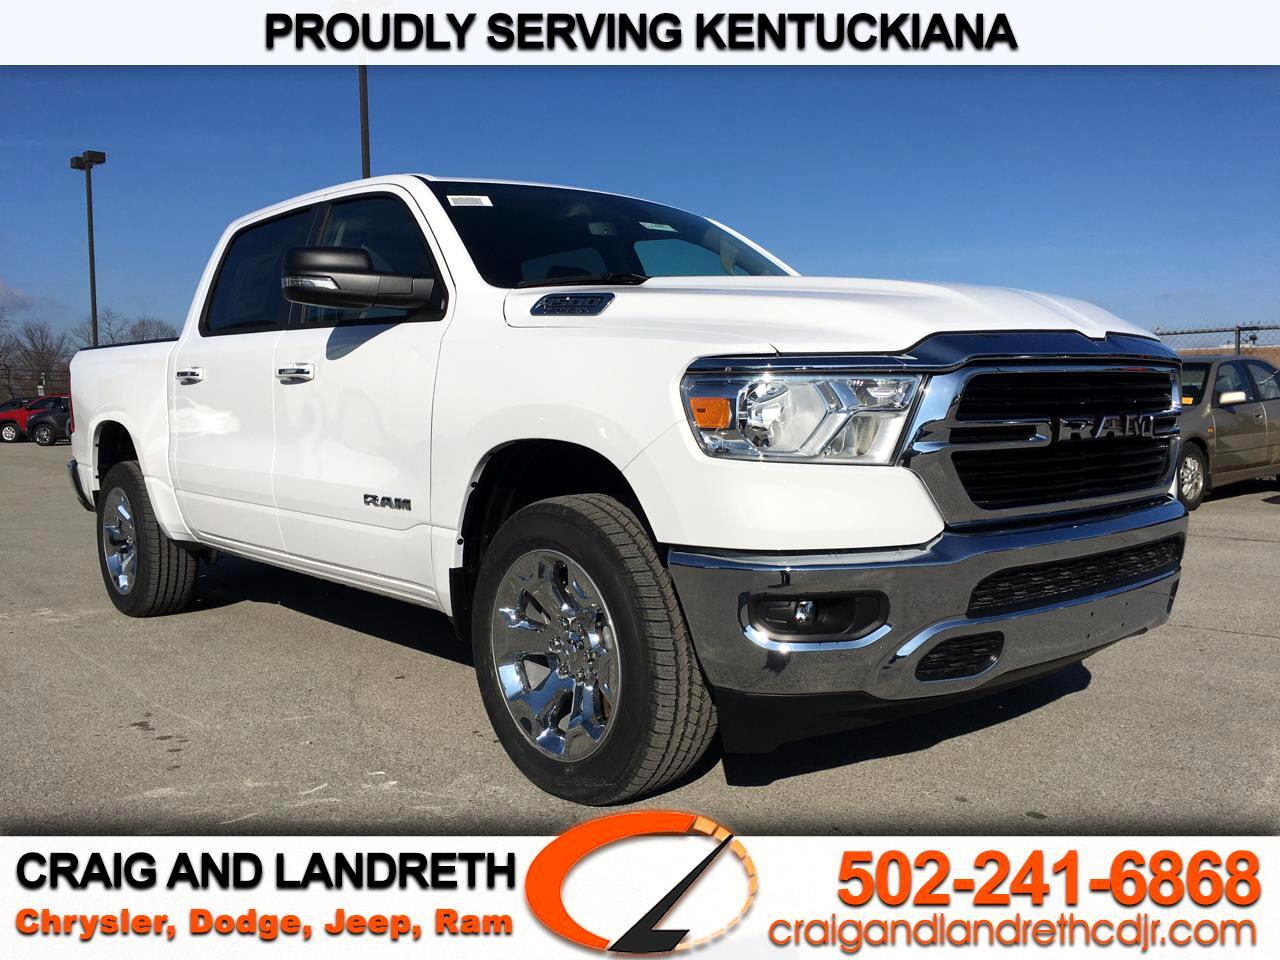 New 2020 RAM 1500 Big Horn 4x4 Crew Cab 5 ft7 in Box